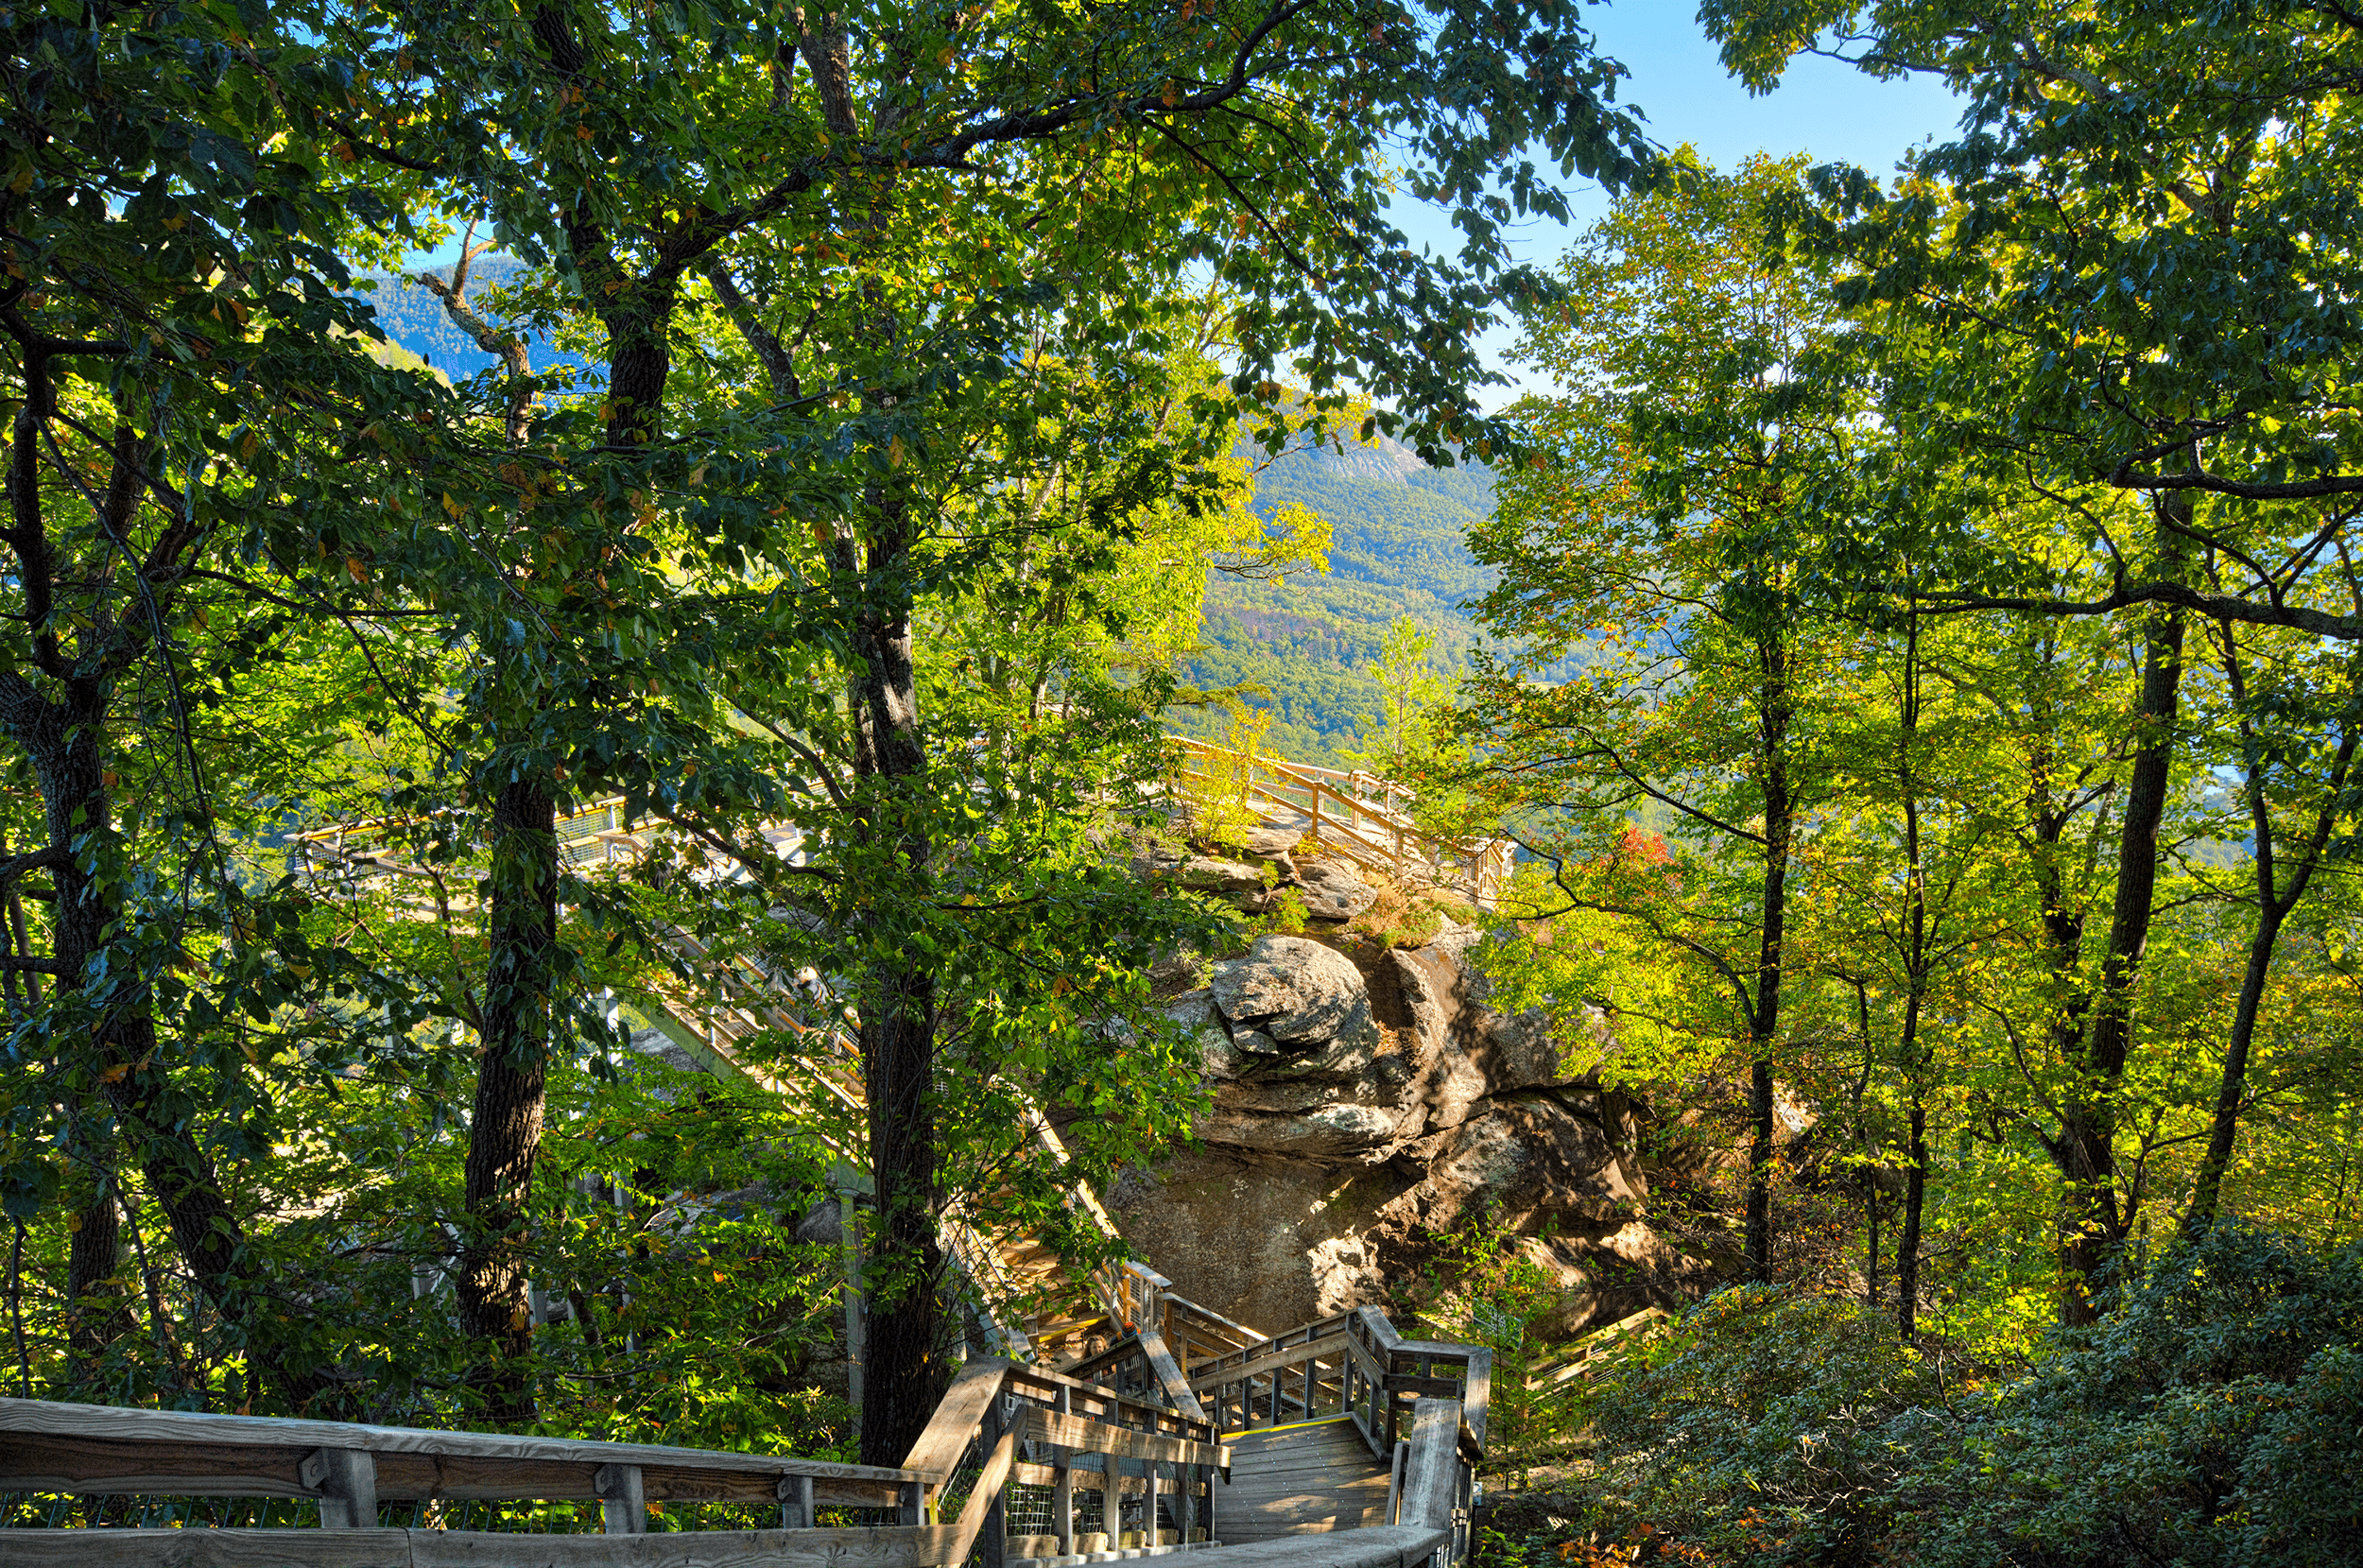 Continuing your hike up on the  Ultimate Stairmaster , you can take a brief stop on one of the many landings as an opportunity to not only catch your breath but also to turn around and enjoy the stunning scenery. Here a view of  Pulpit Rock  below.